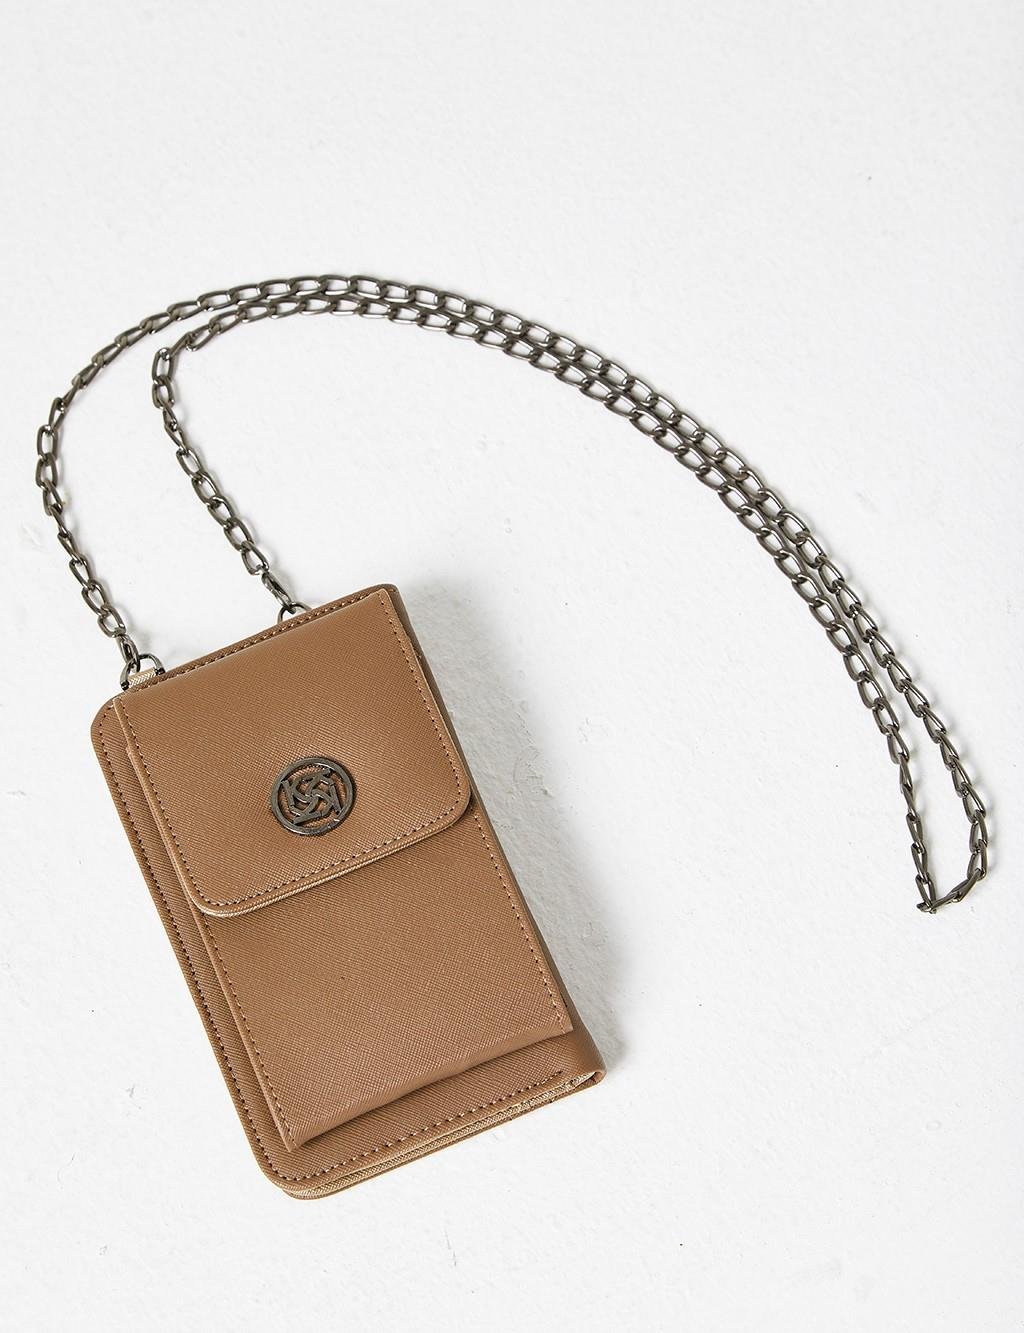 Covered Chain Strap Wallet B21 CZN03 Beige